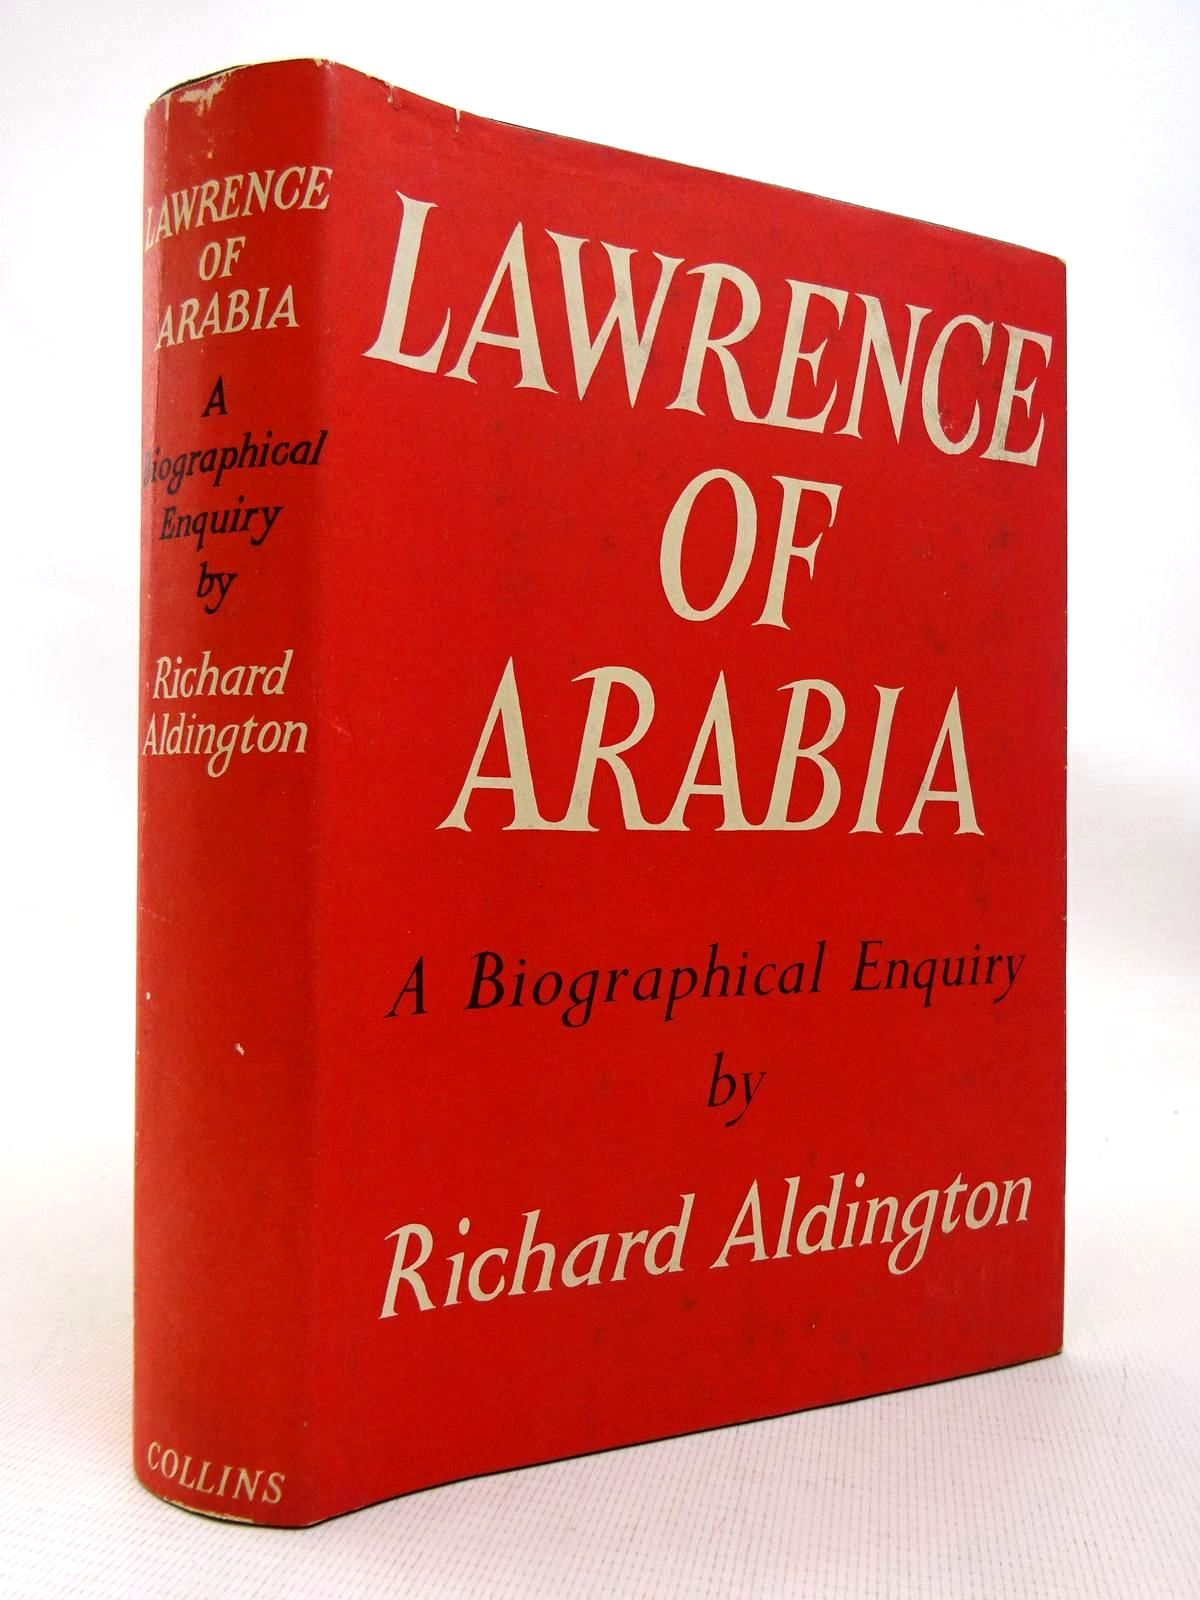 Photo of LAWRENCE OF ARABIA - A BIOGRAPHICAL ENQUIRY written by Aldington, Richard published by Collins (STOCK CODE: 1816388)  for sale by Stella & Rose's Books